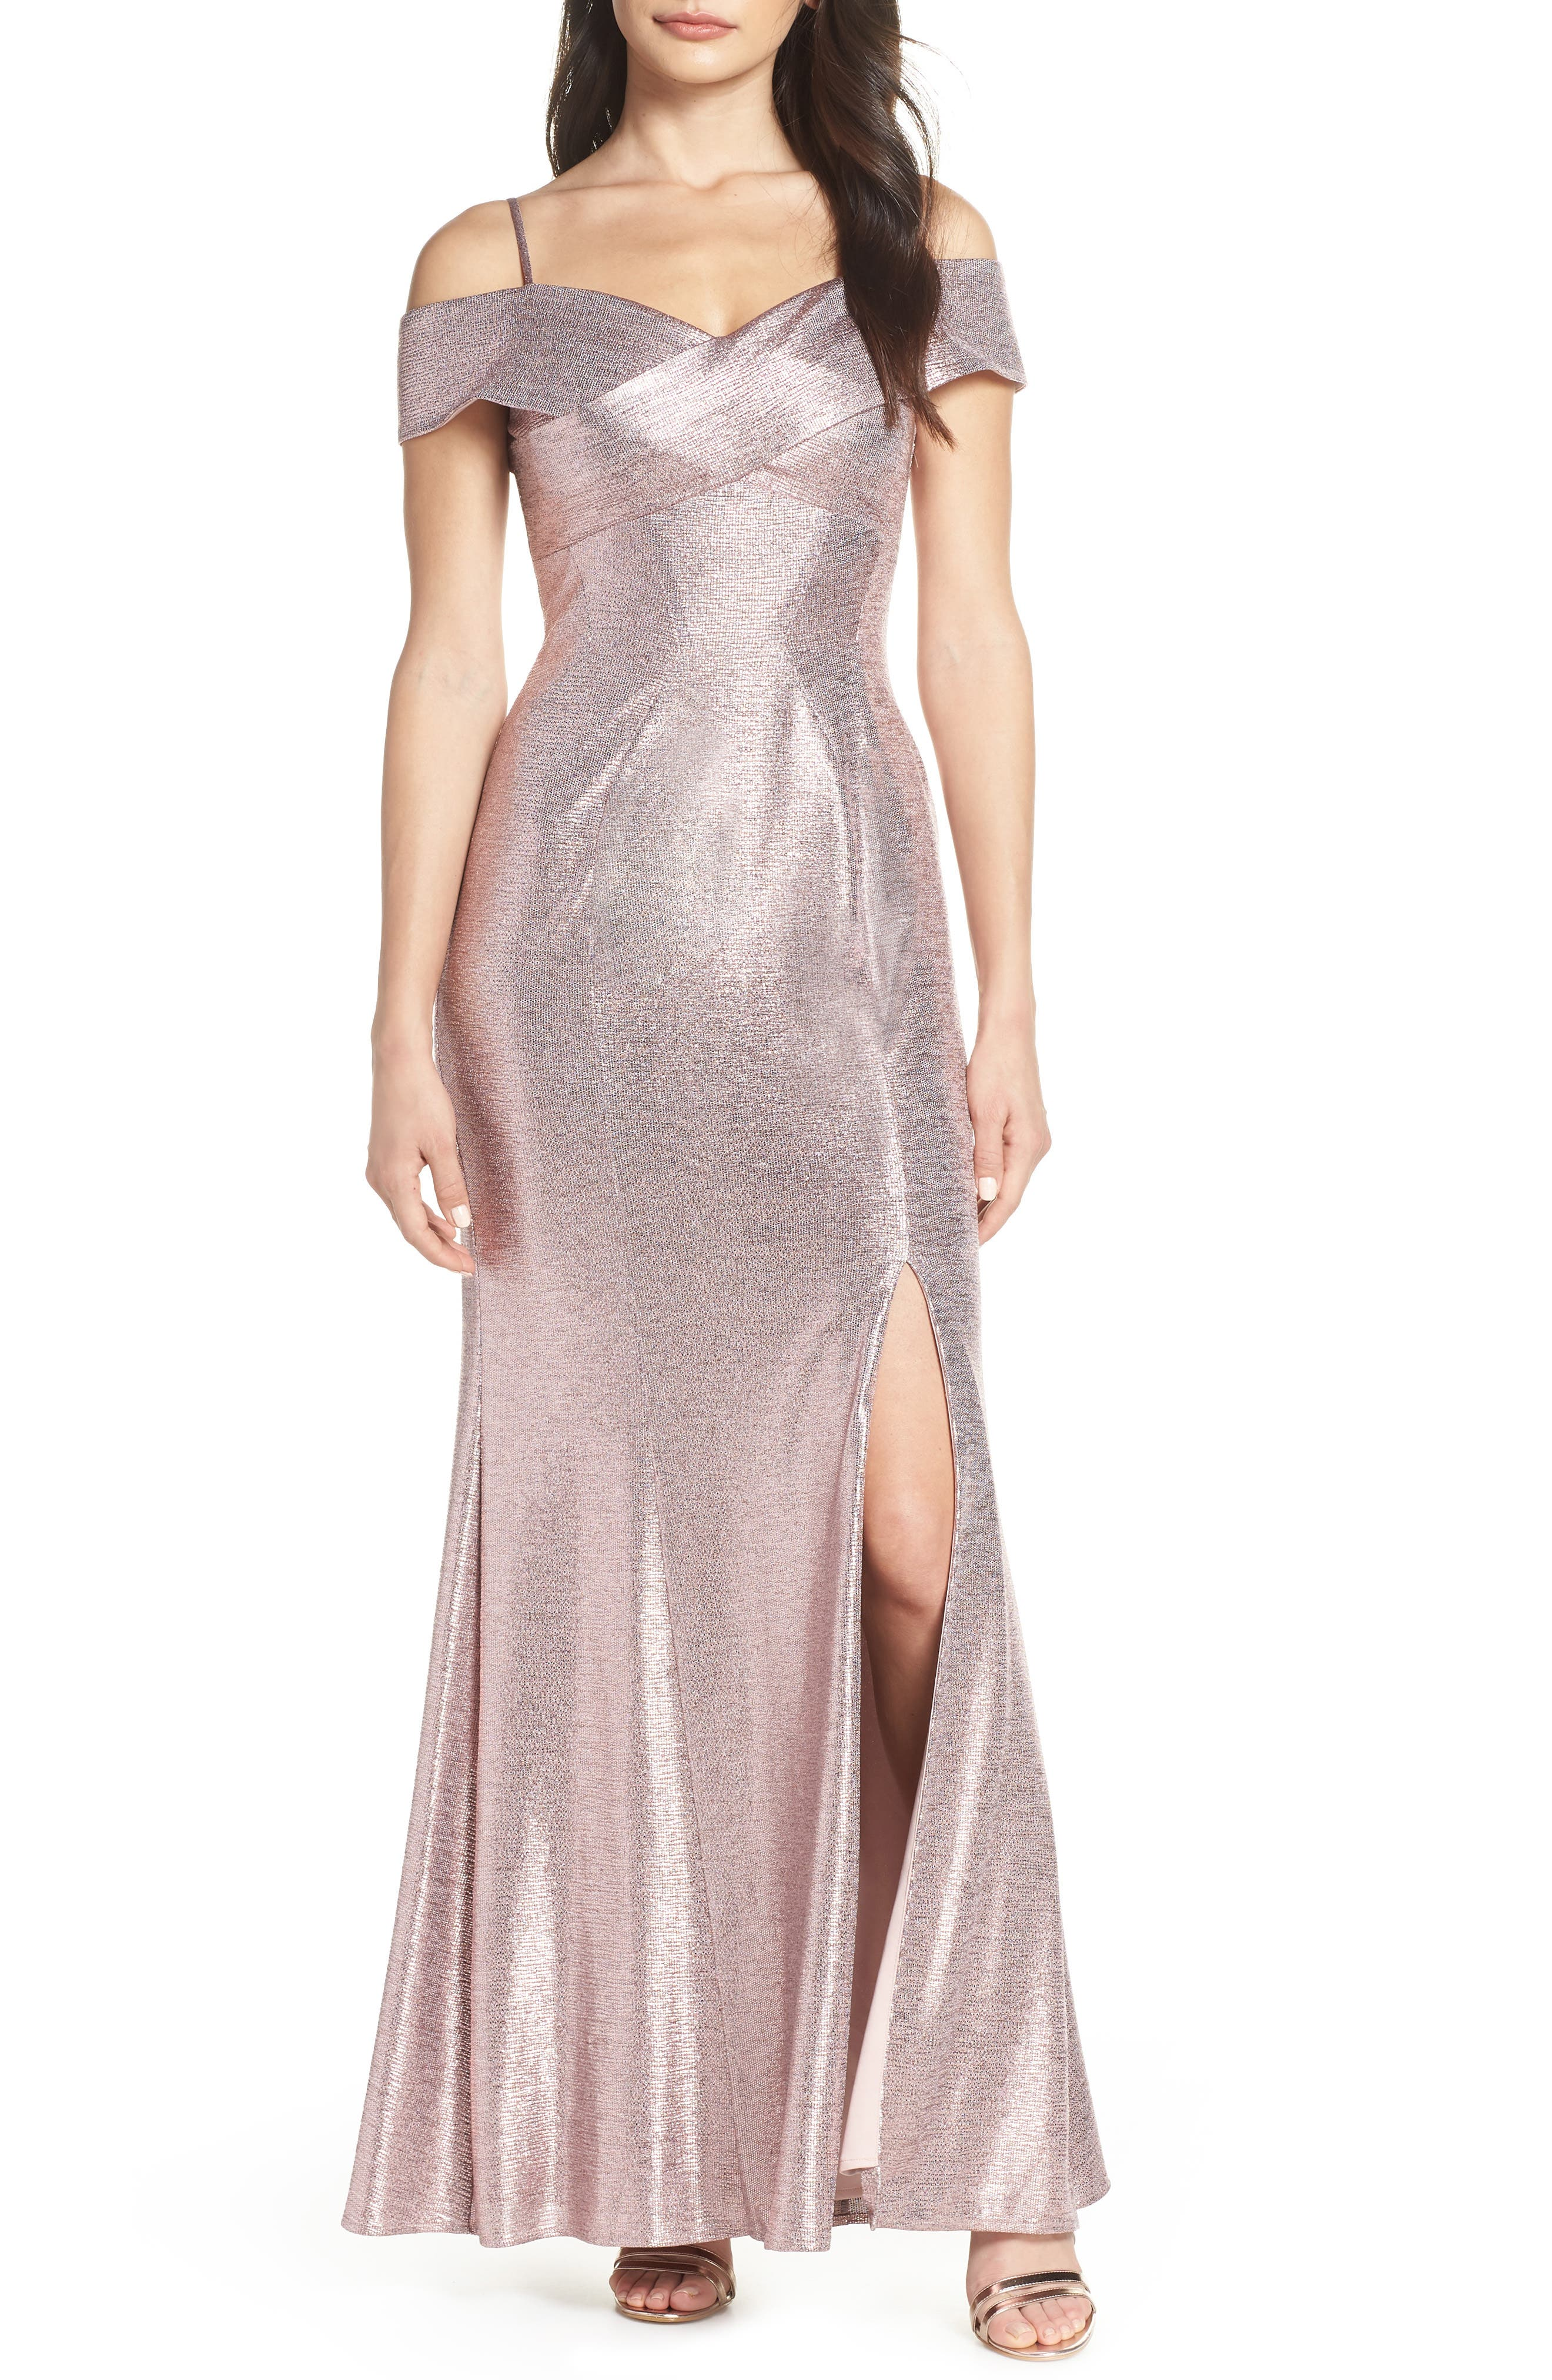 Morgan & Co. Crisscross Portrait Collar Metallic Evening Dress, Pink